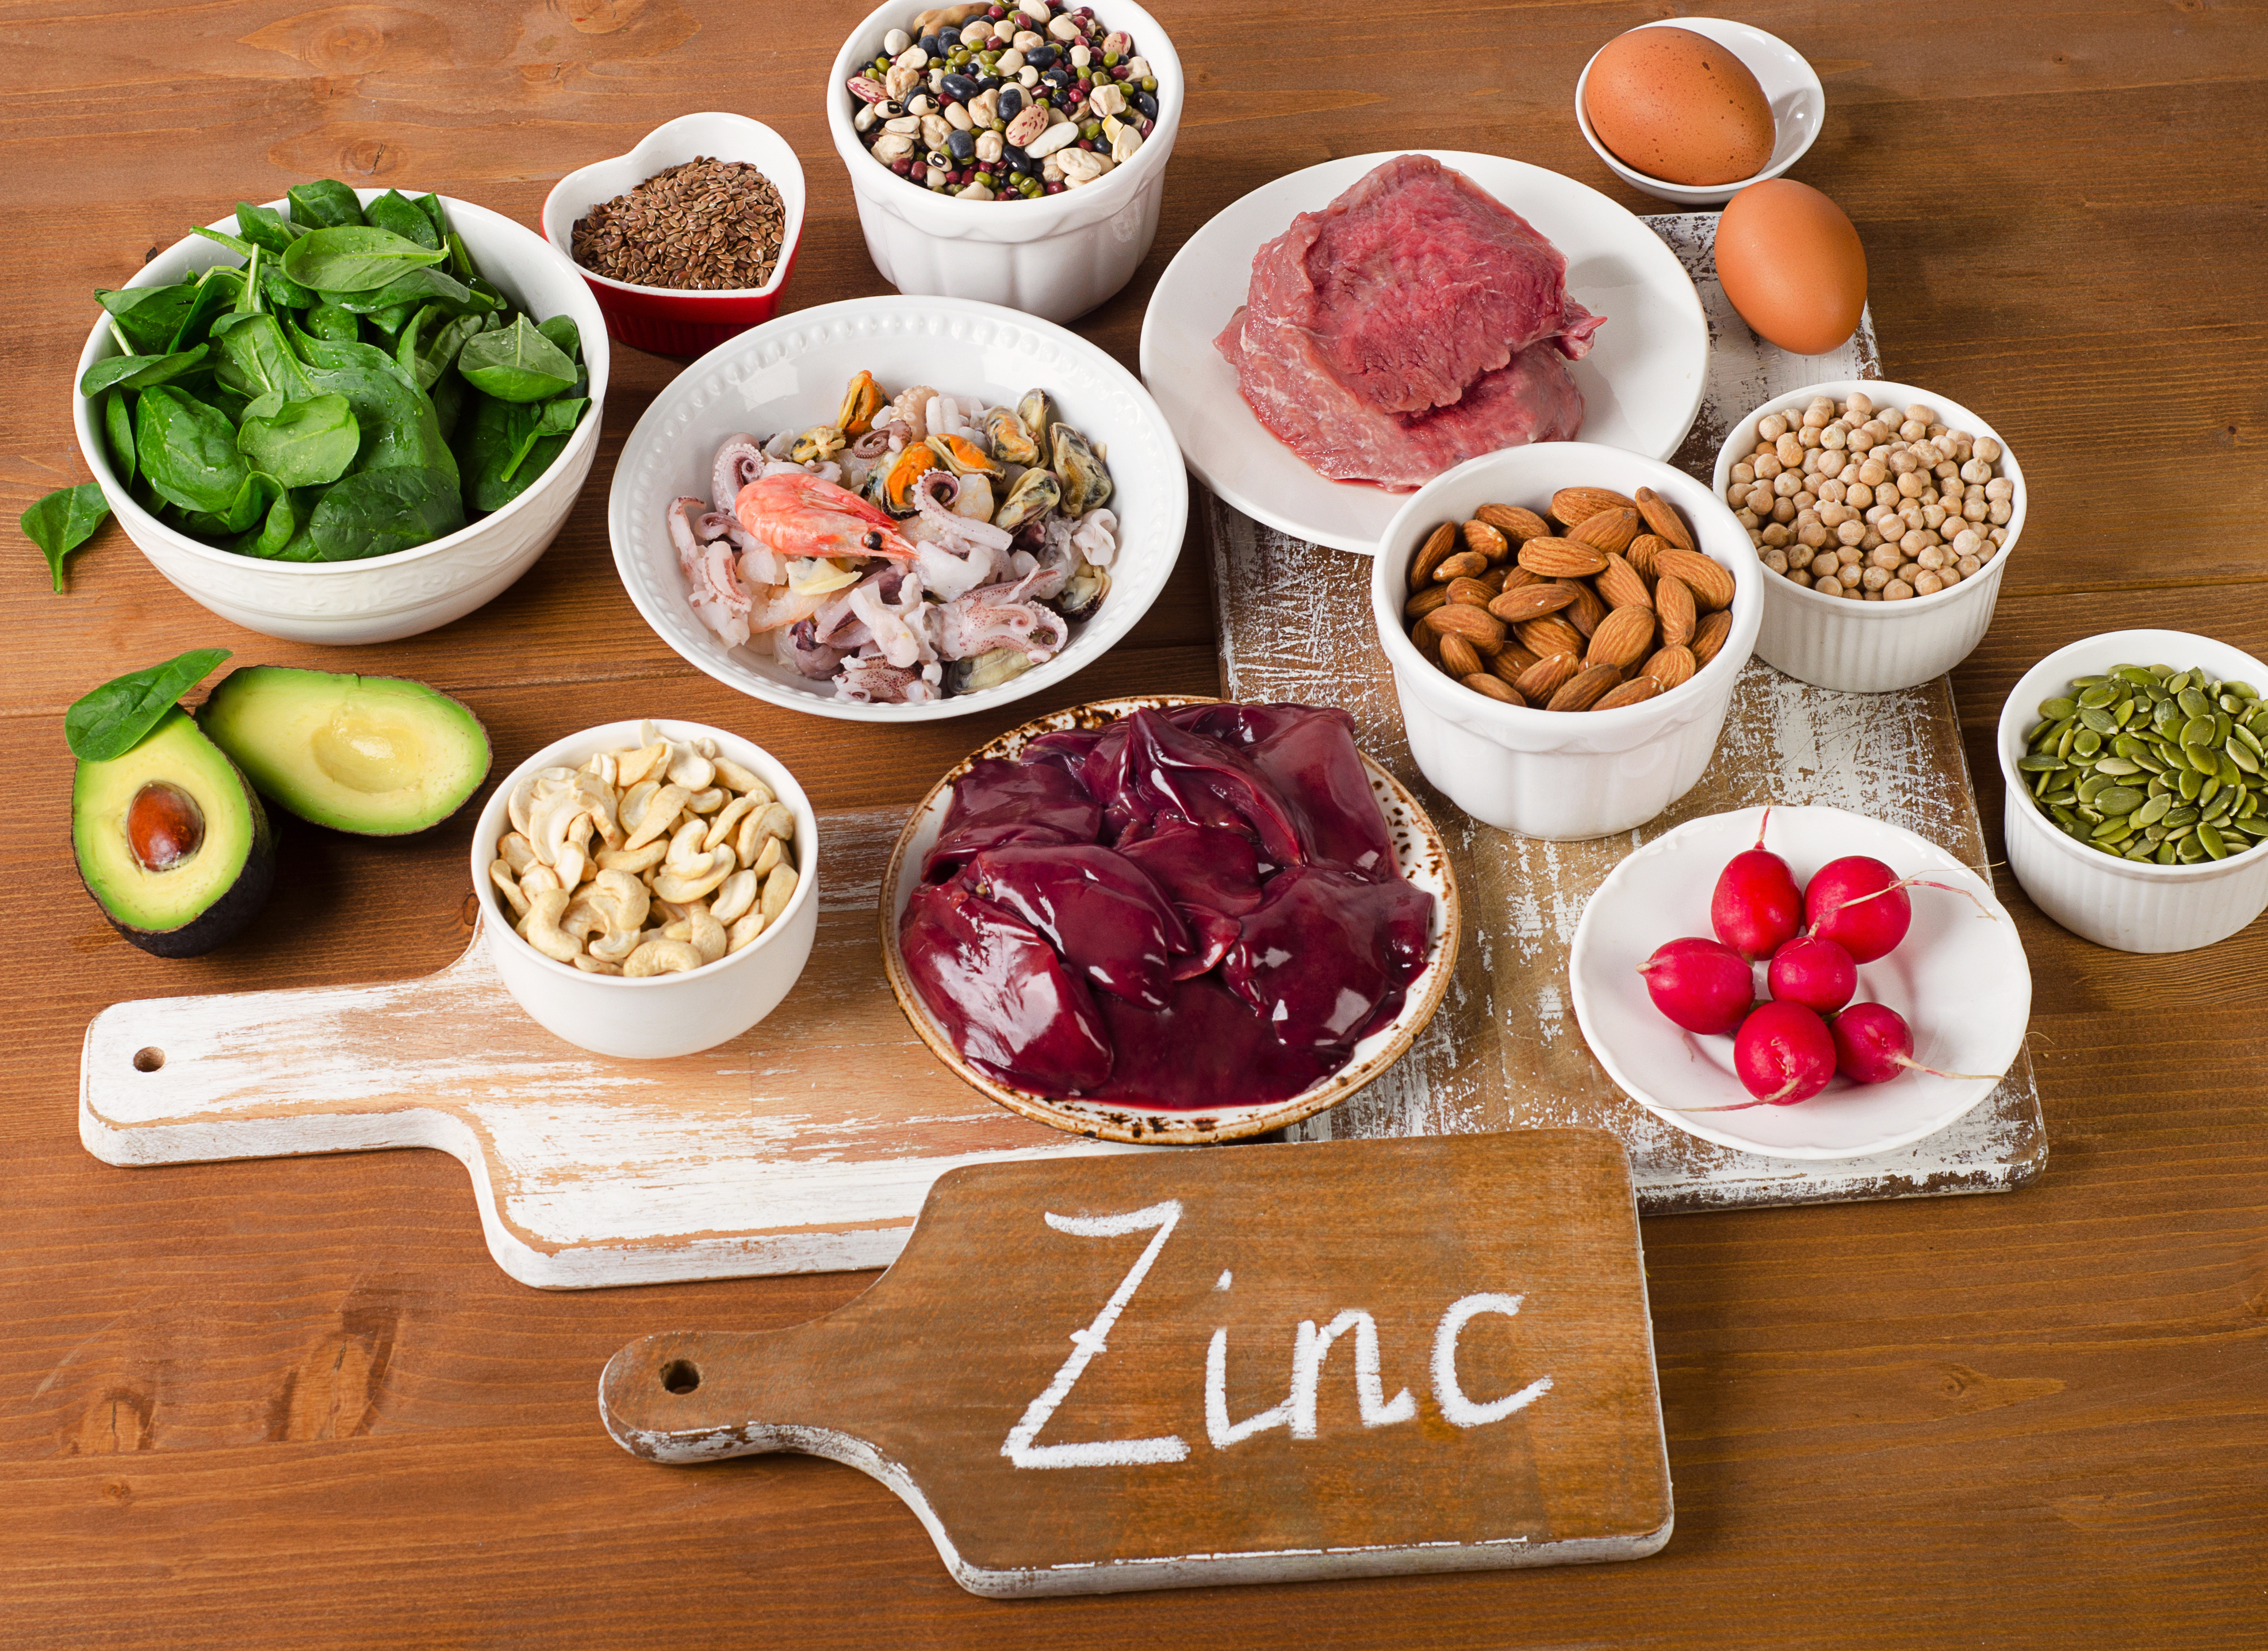 zinc - health benefits, deficiency symptoms & natural food